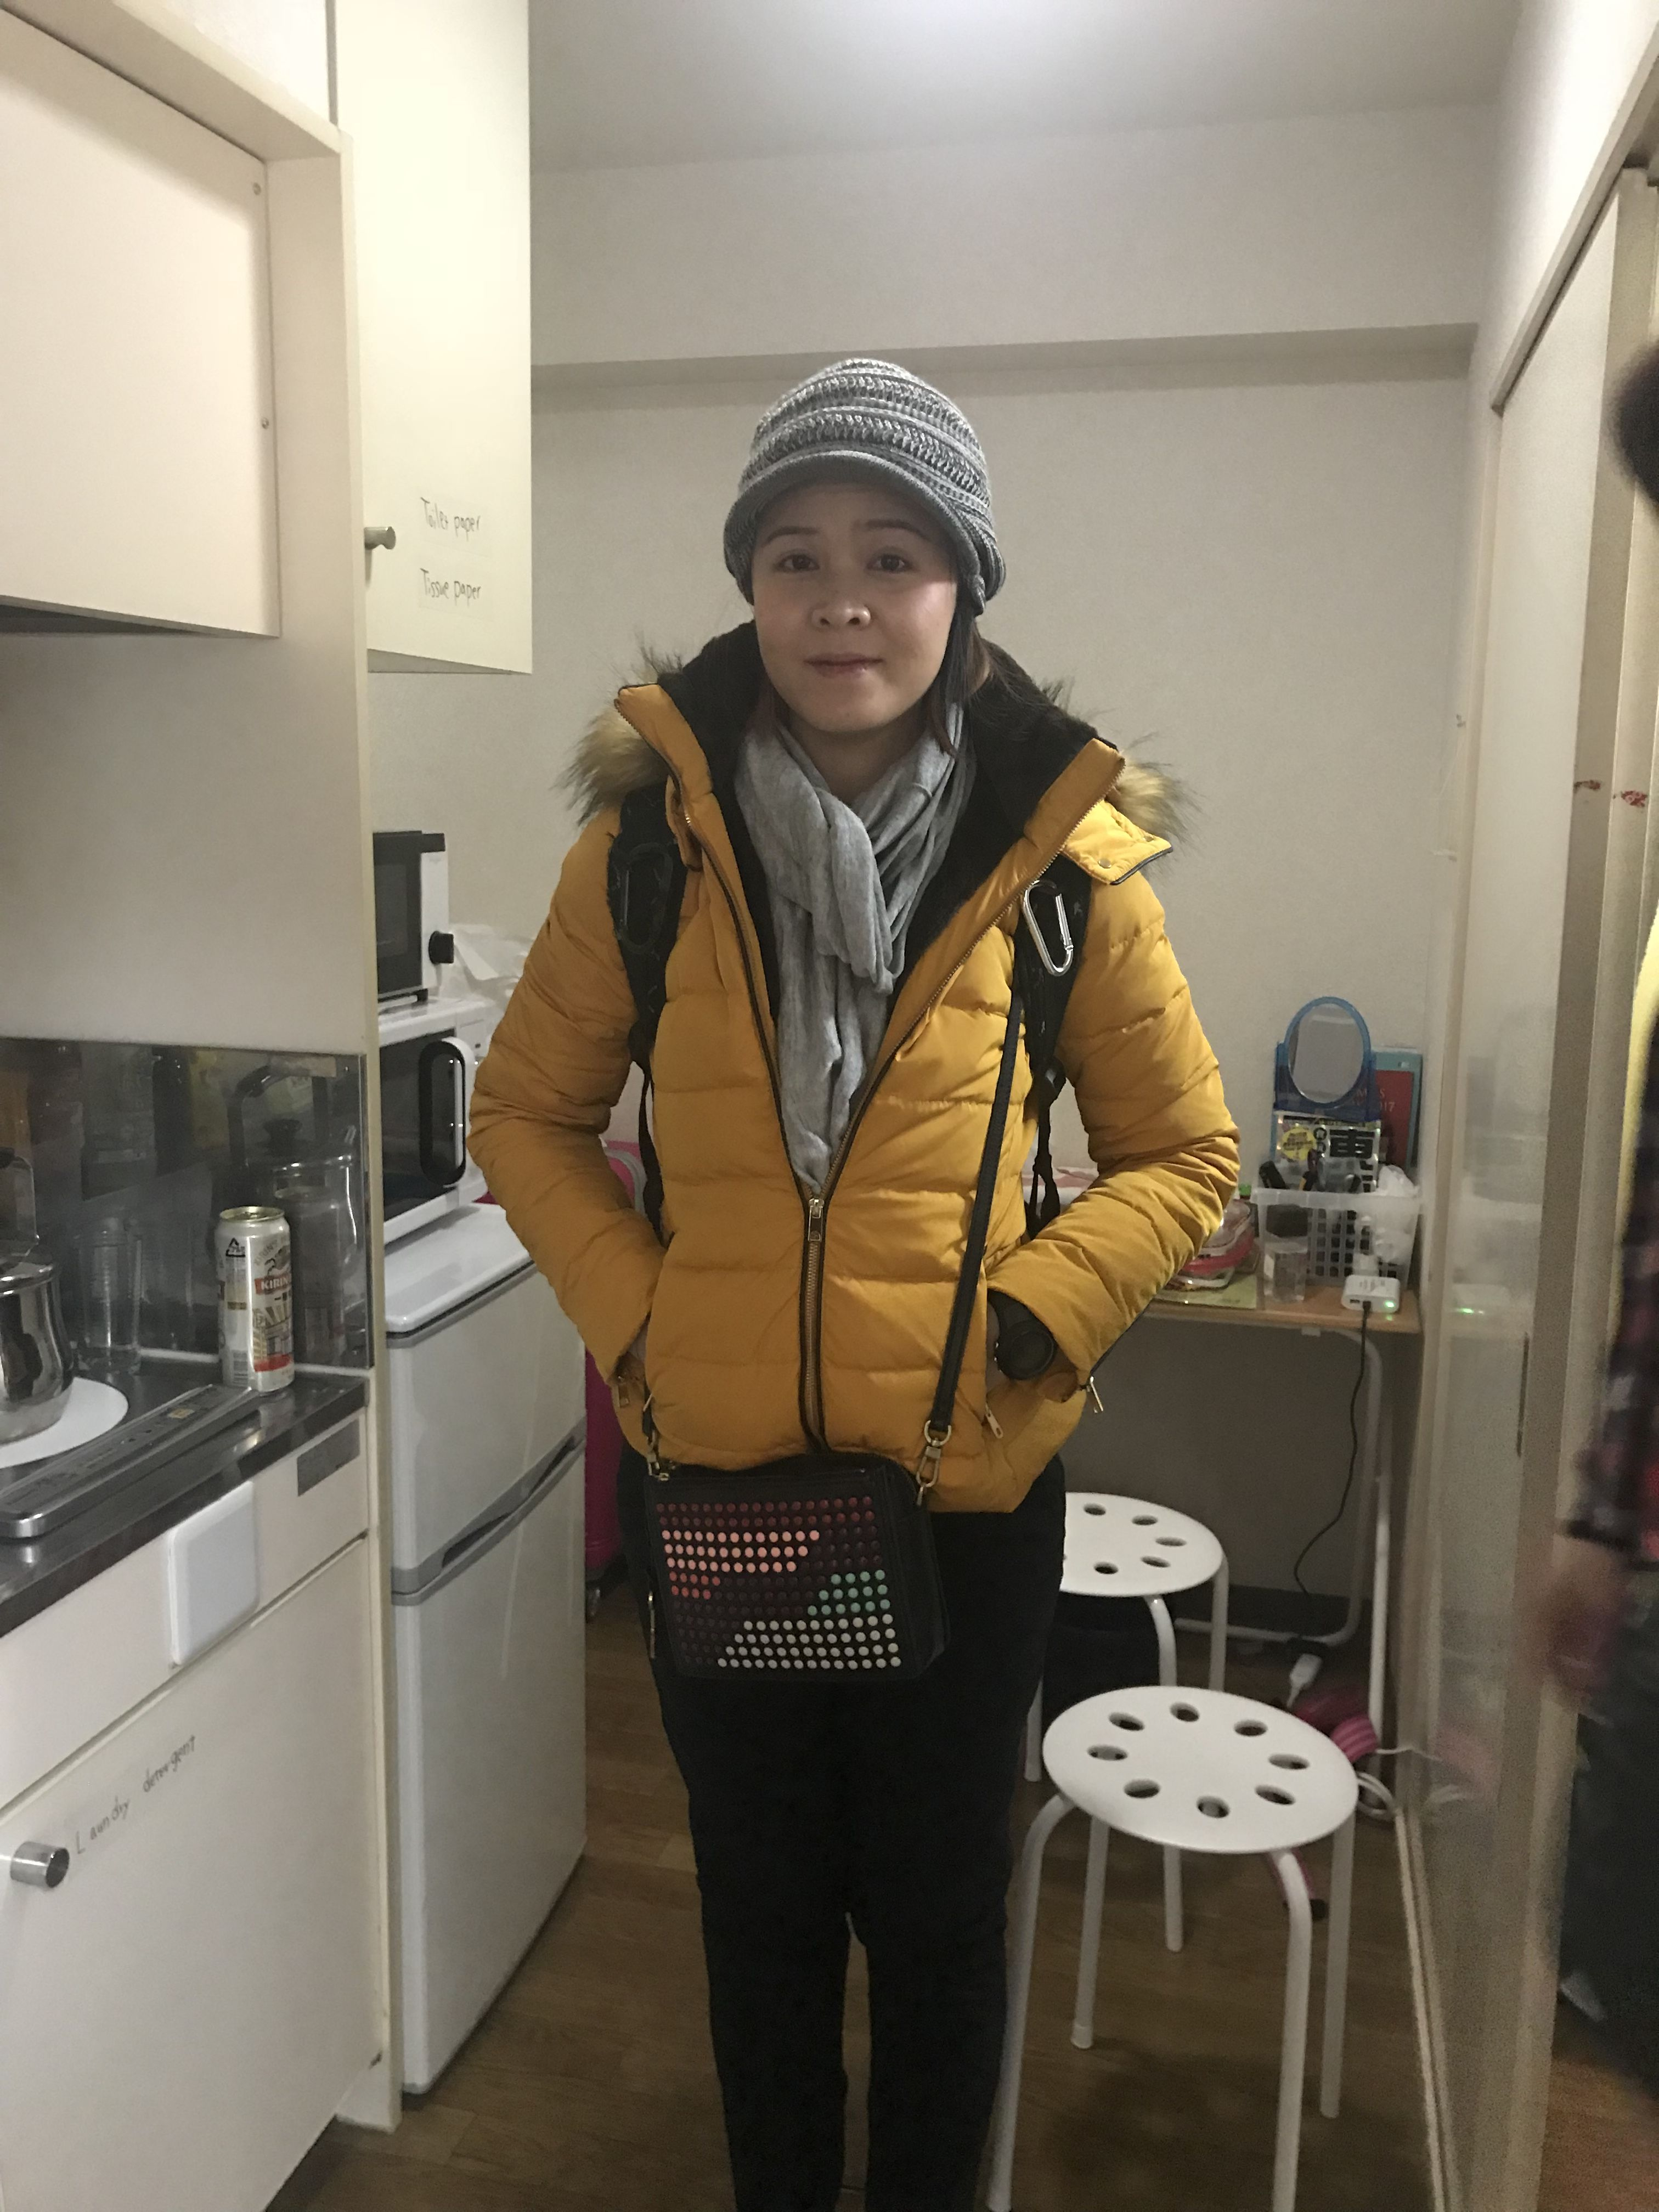 fcaec31442 OOTD: Winter Hat - Daiso , Scarf - H&M , Winter Jacket - Zara - Crossbody  Bag - Fossil Campbell , Heattech Pants - Uniqlo. Occasion- at a small  airbnb going ...